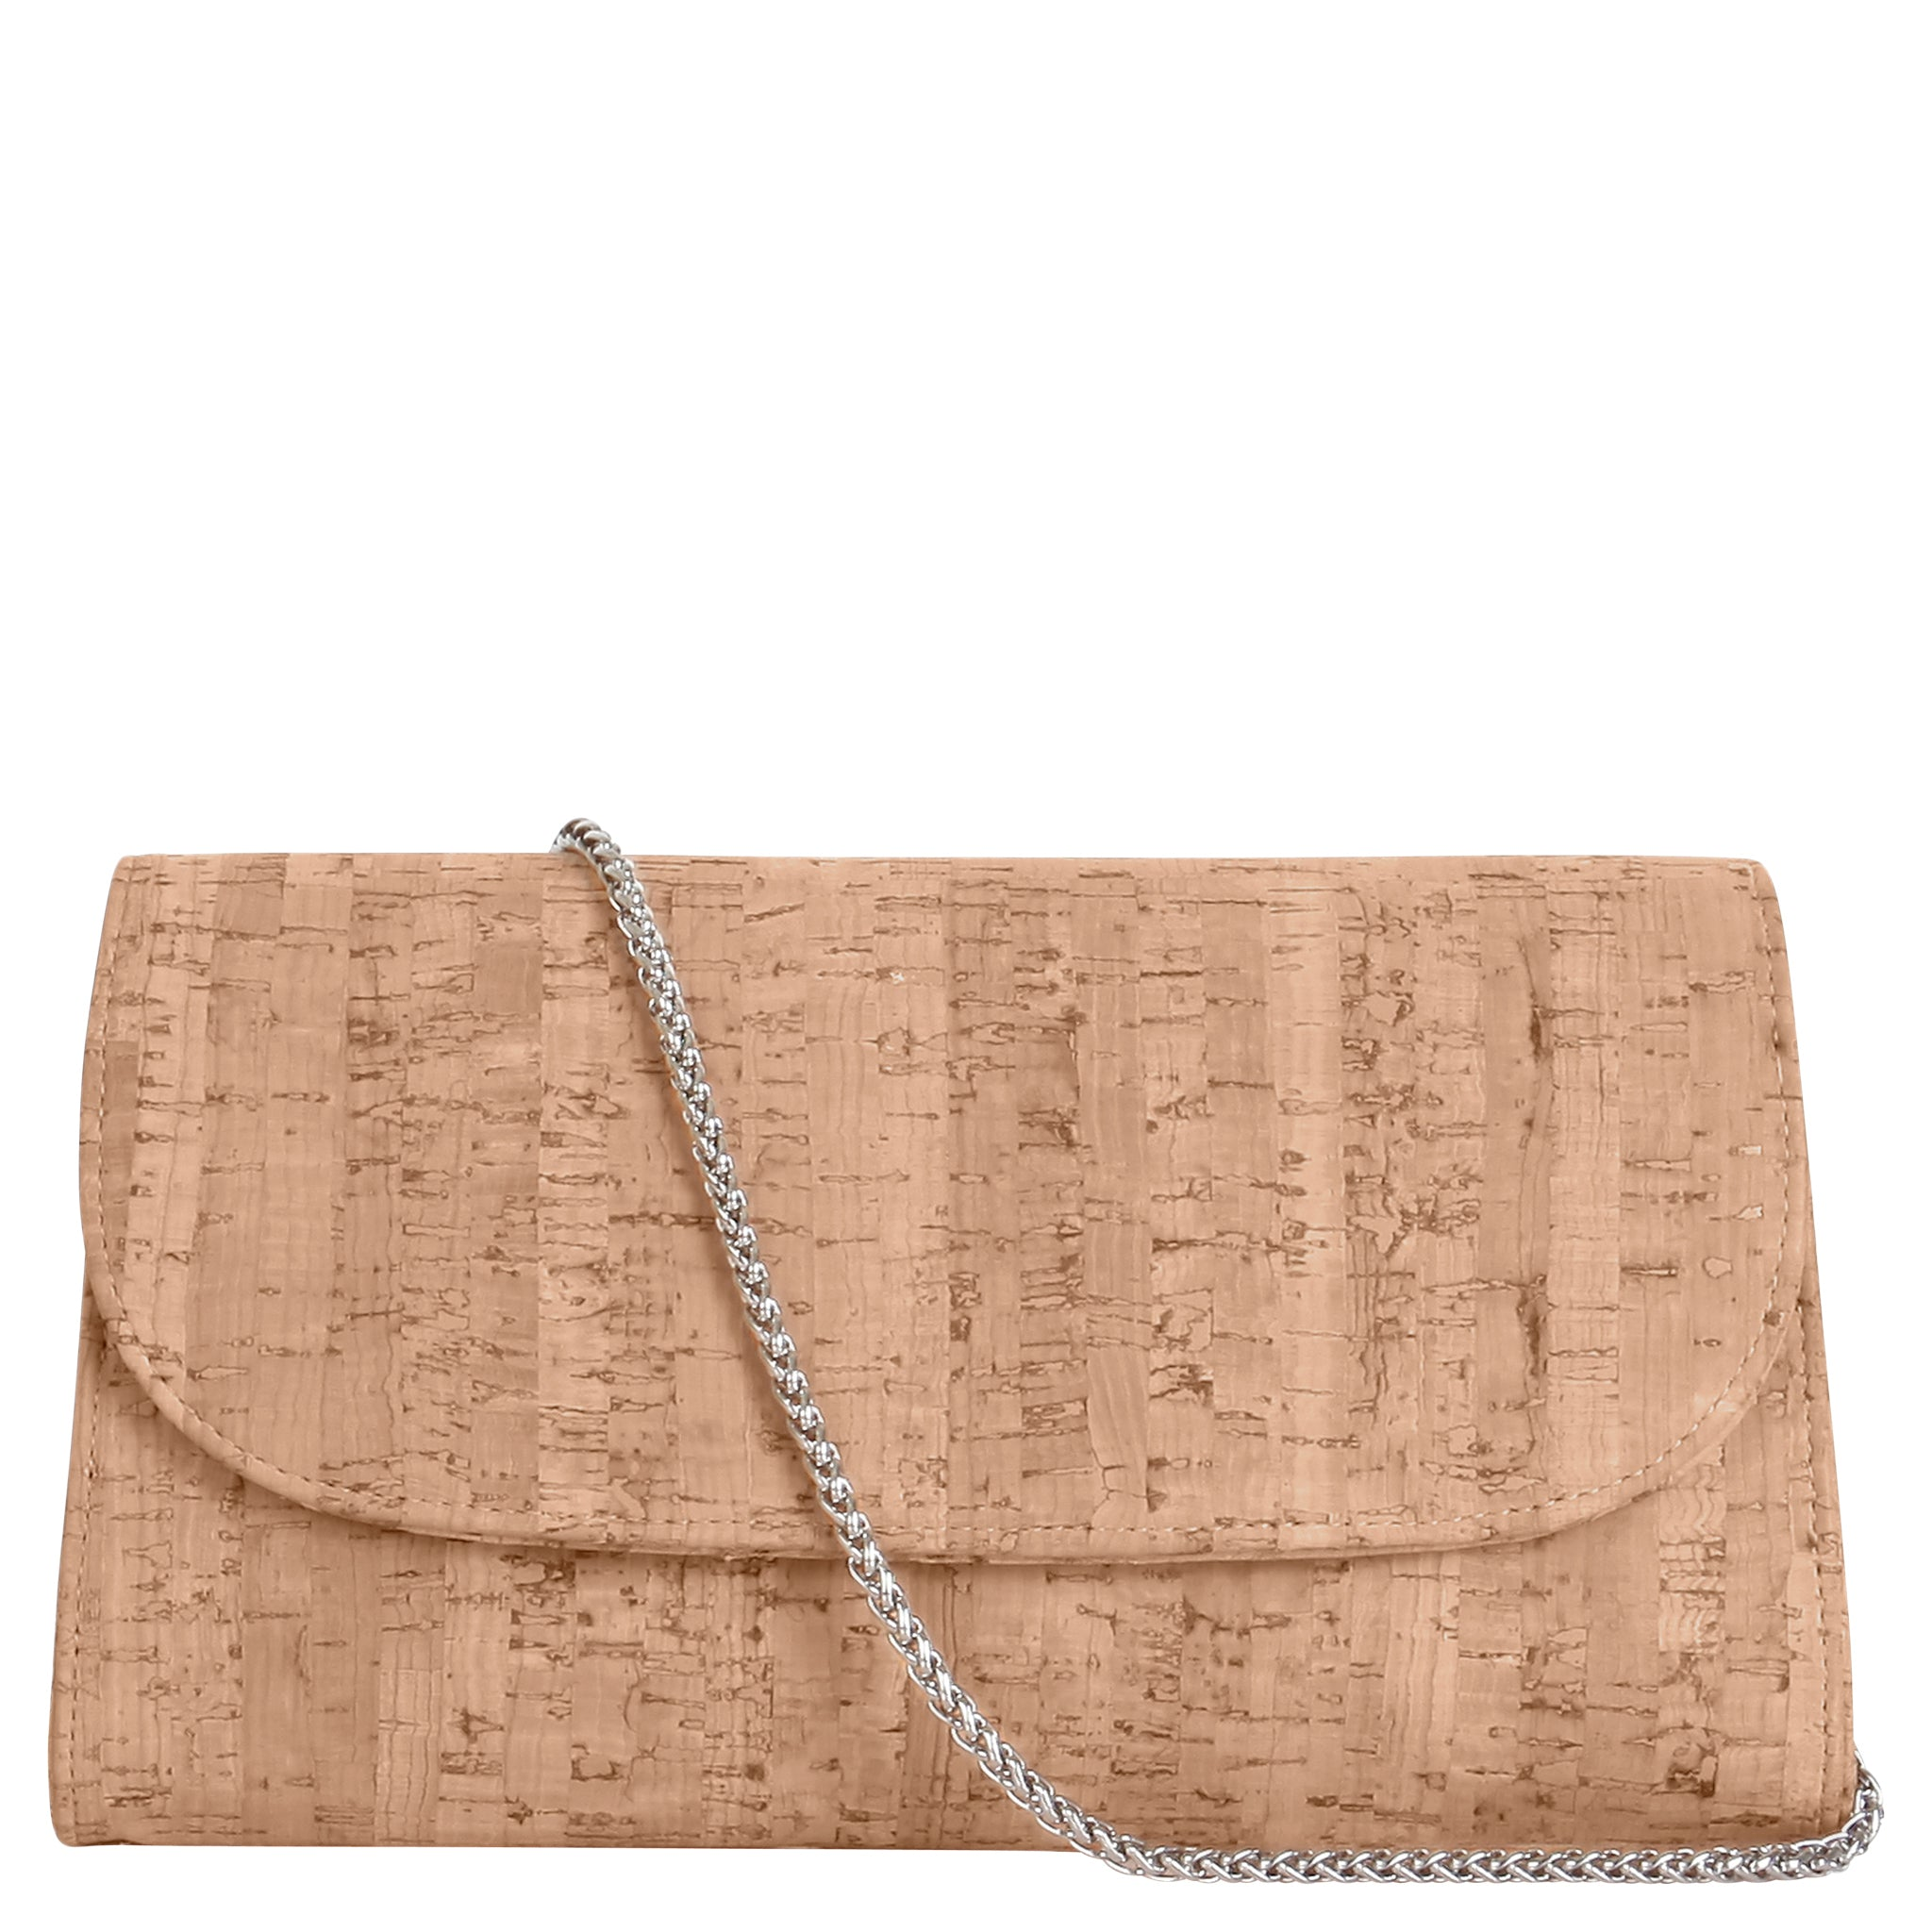 73731f78 Cork Clutch Purse with Detachable Chain Strap - Didi - Svala